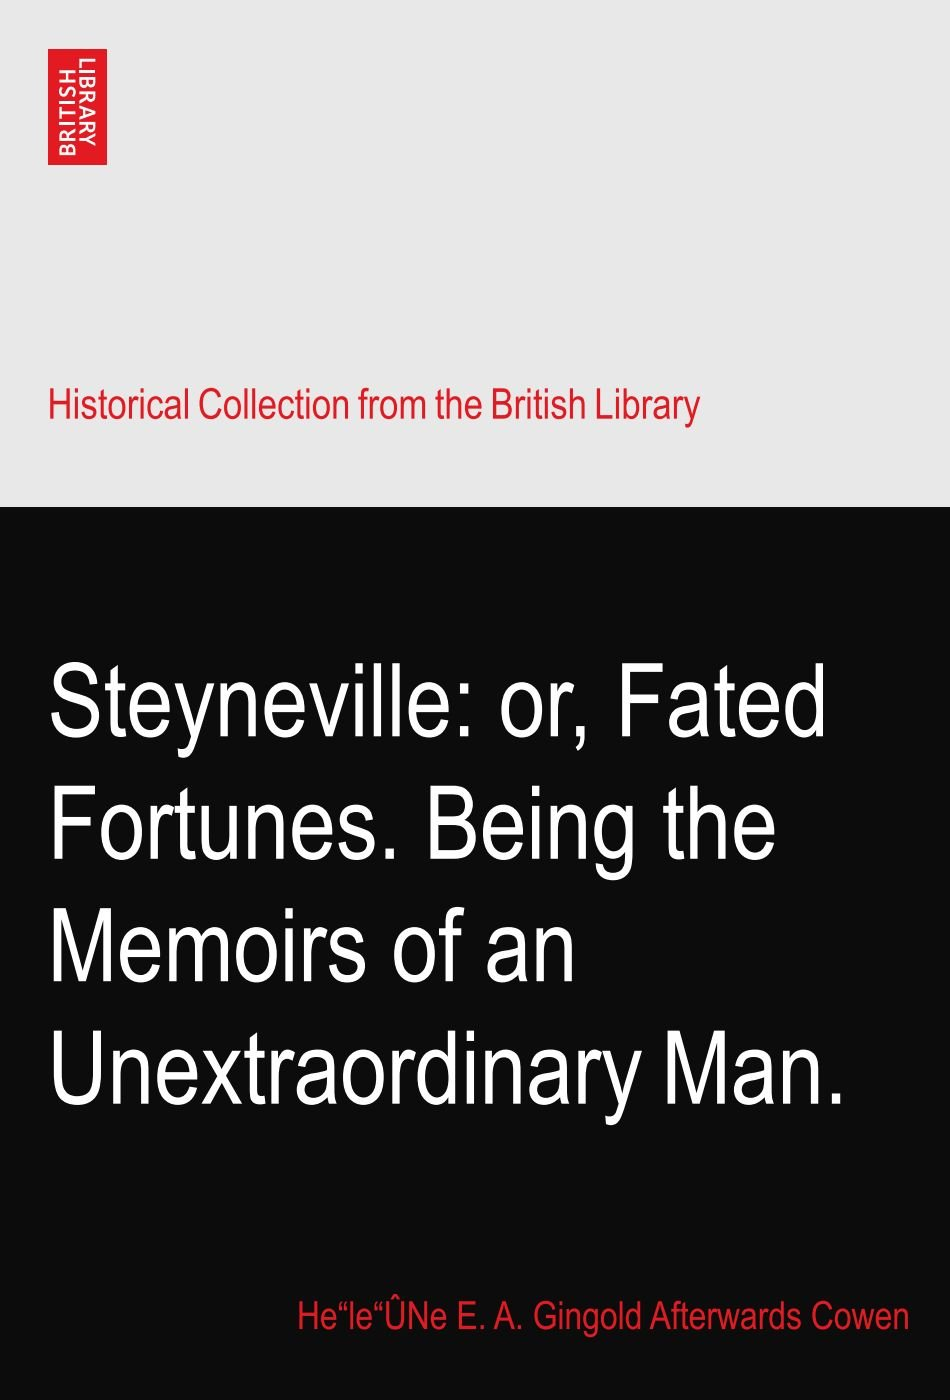 Download Steyneville: or, Fated Fortunes. Being the Memoirs of an Unextraordinary Man. pdf